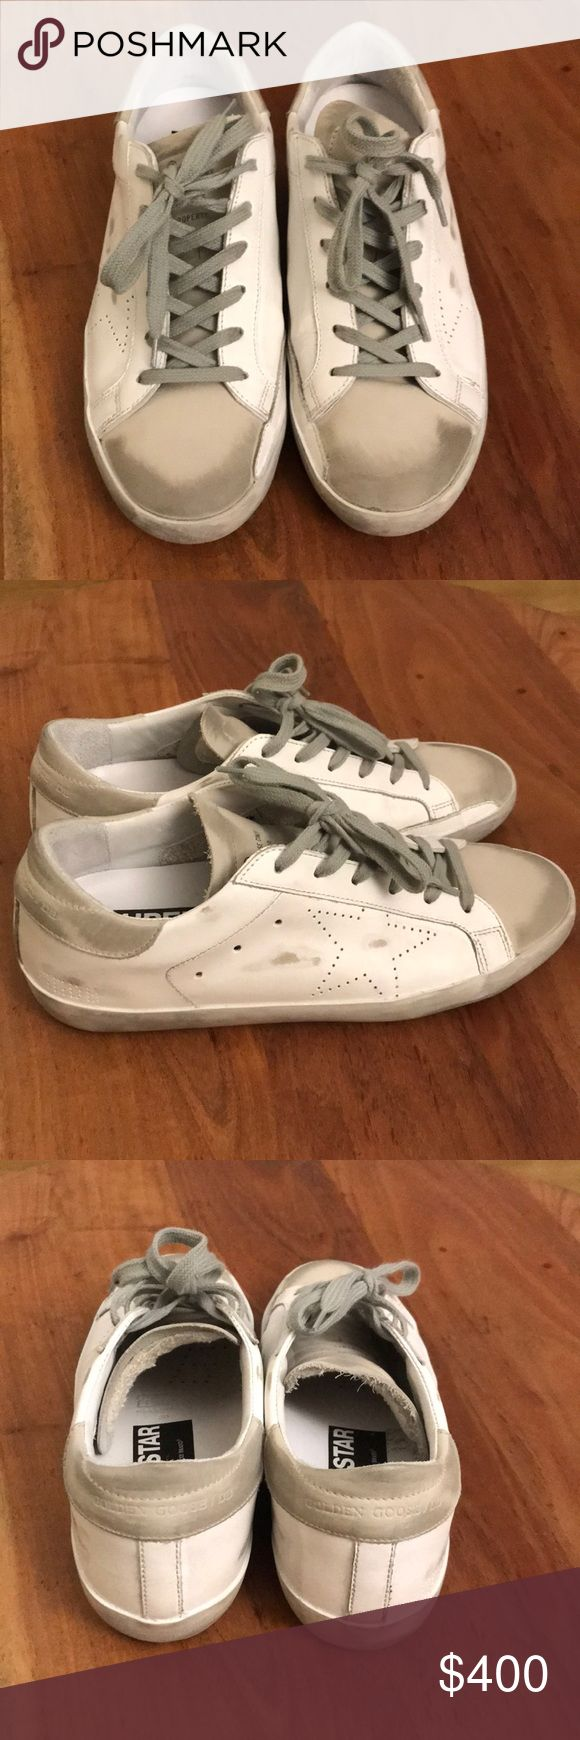 Golden Goose sneakers Super star low top leather trainers. Only worn around my apartment. Super comfortable but they are a size to big for me. Willing to trade for size 37. Golden Goose Shoes Sneakers